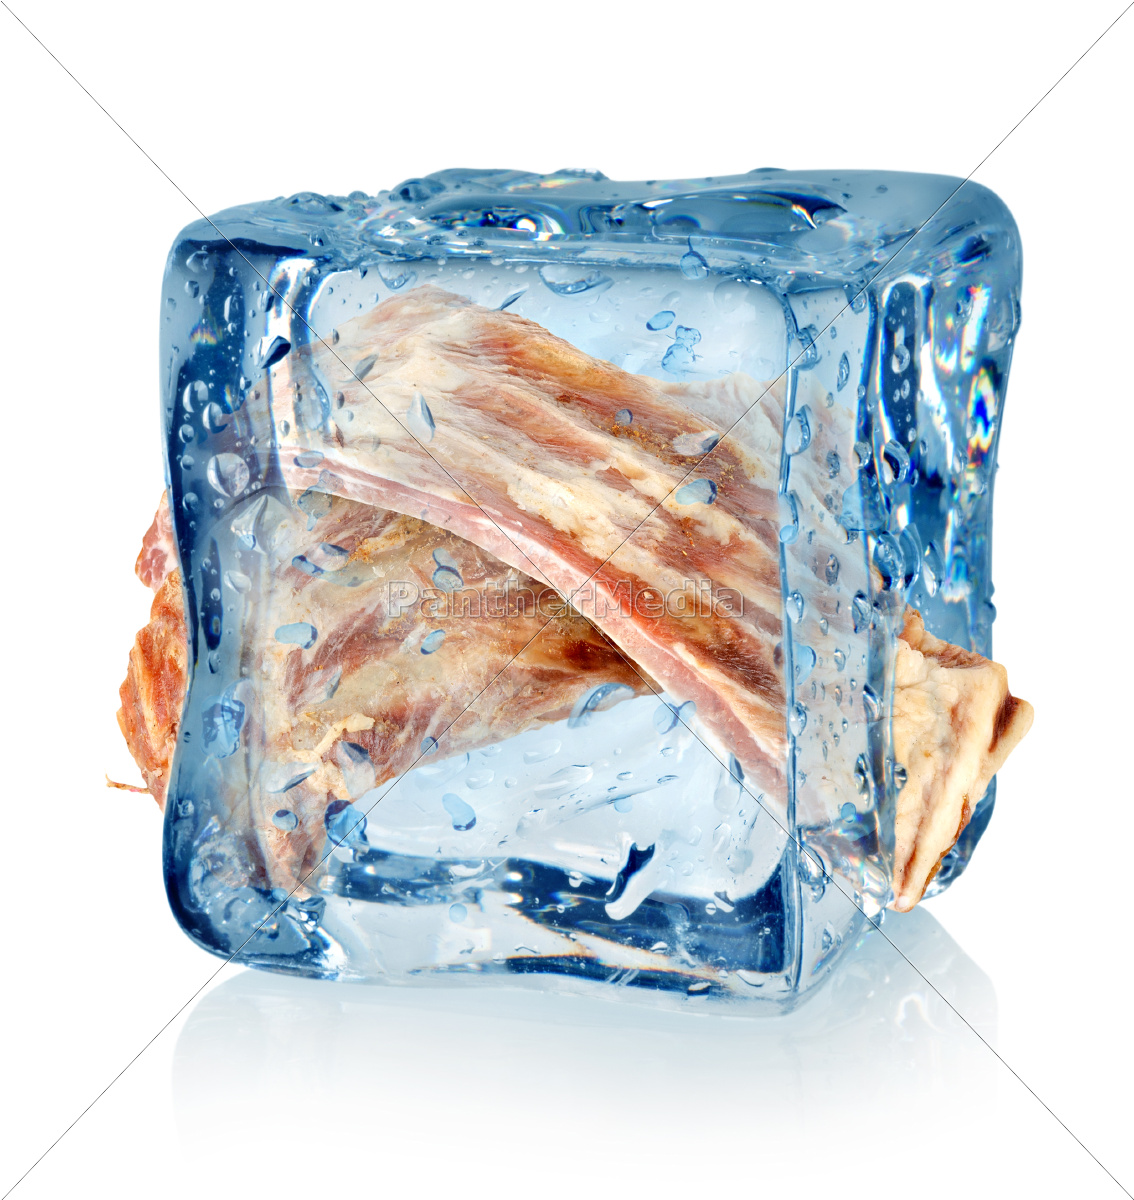 ice, cube, and, ribs - 10125765